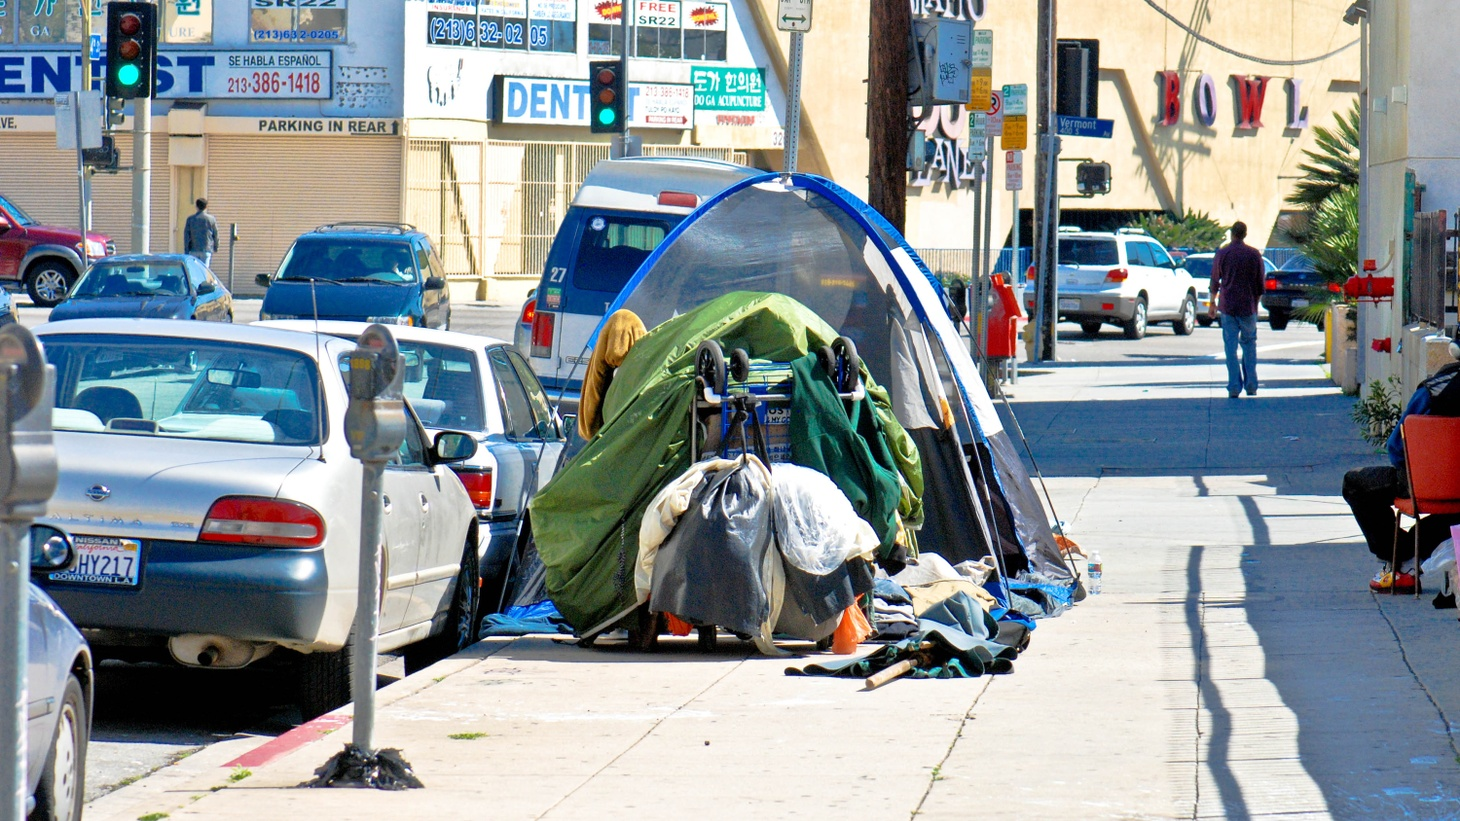 Homelessness in LA County has increased by 12% in the past two years — to 44,000, more than the populations of many local cities. Official blame goes to slow economic recovery, but people who work with the homeless say public agencies aren't doing their jobs or spending enough in the right ways.